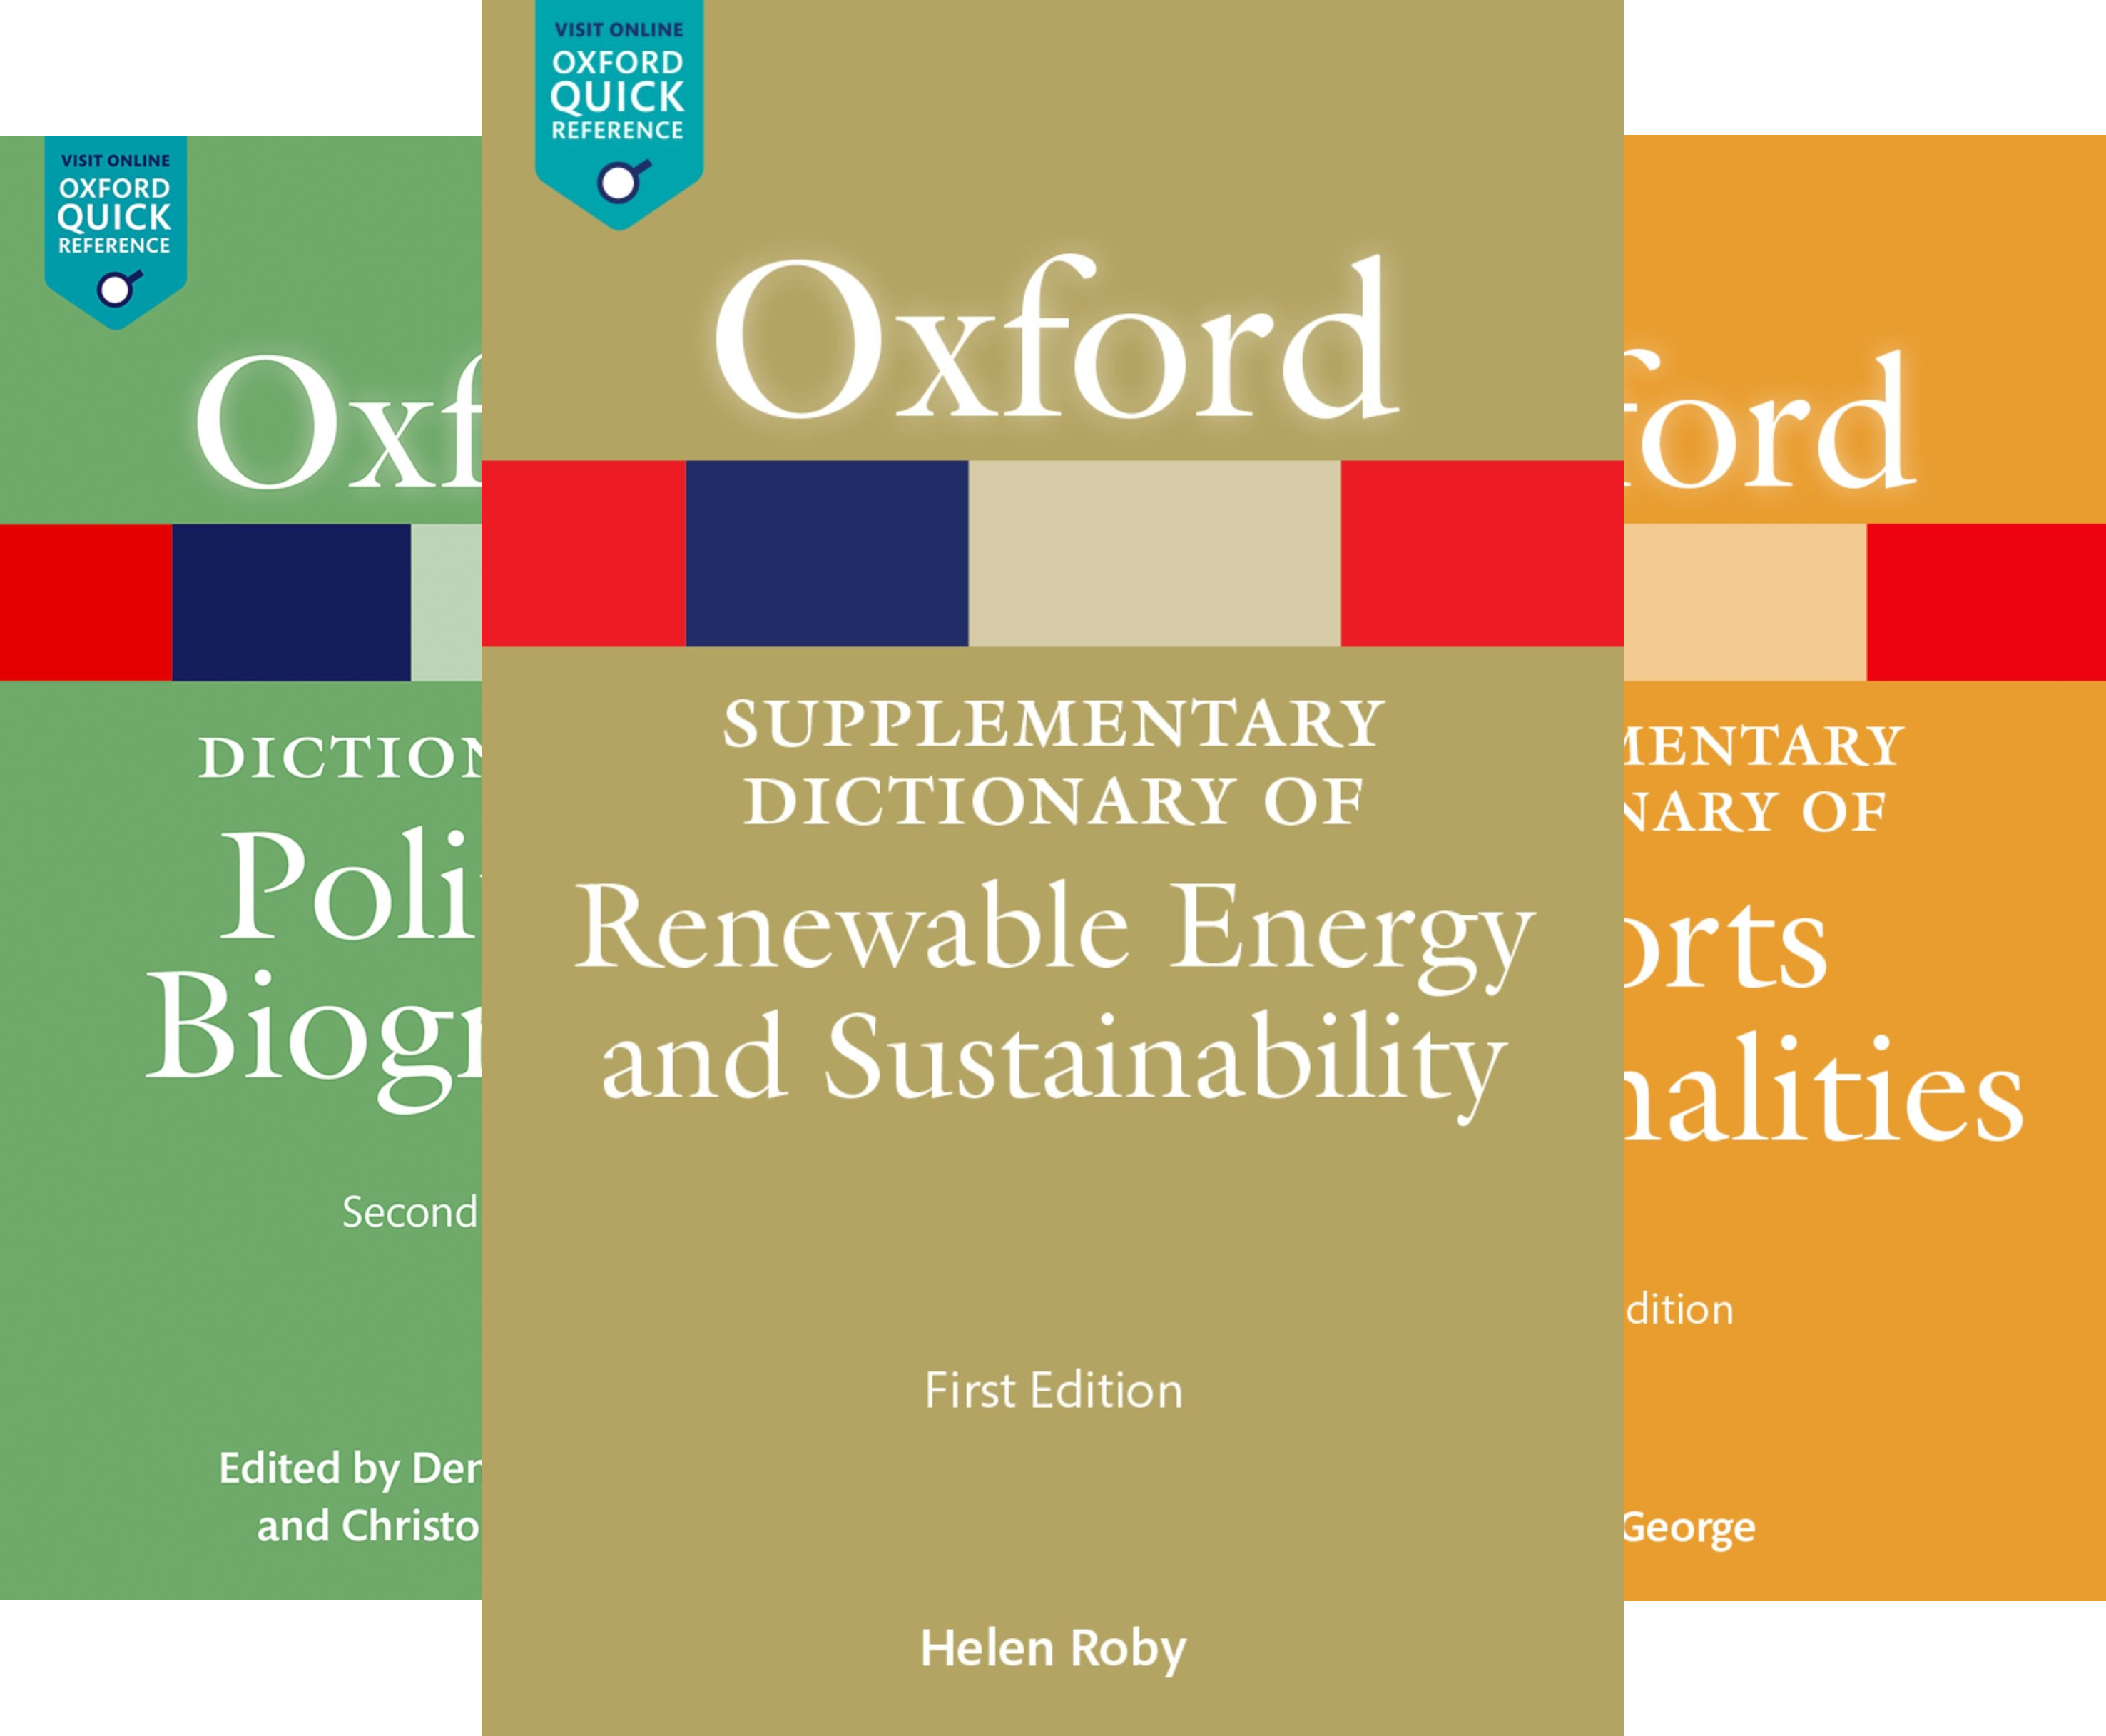 Oxford Quick Reference Online